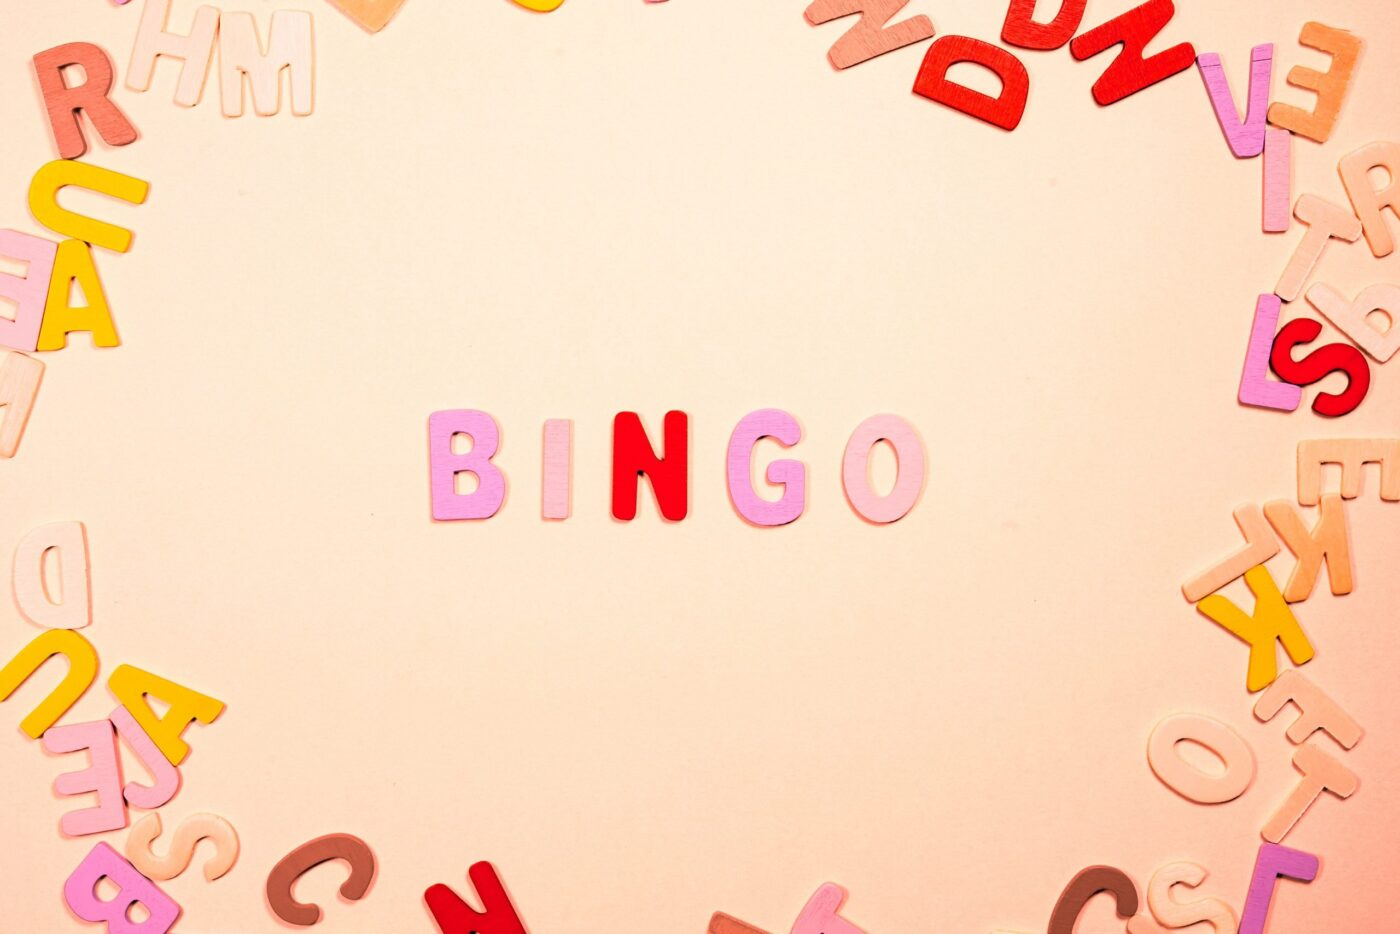 Bingo: The Gambling Game You Can Play with Friends